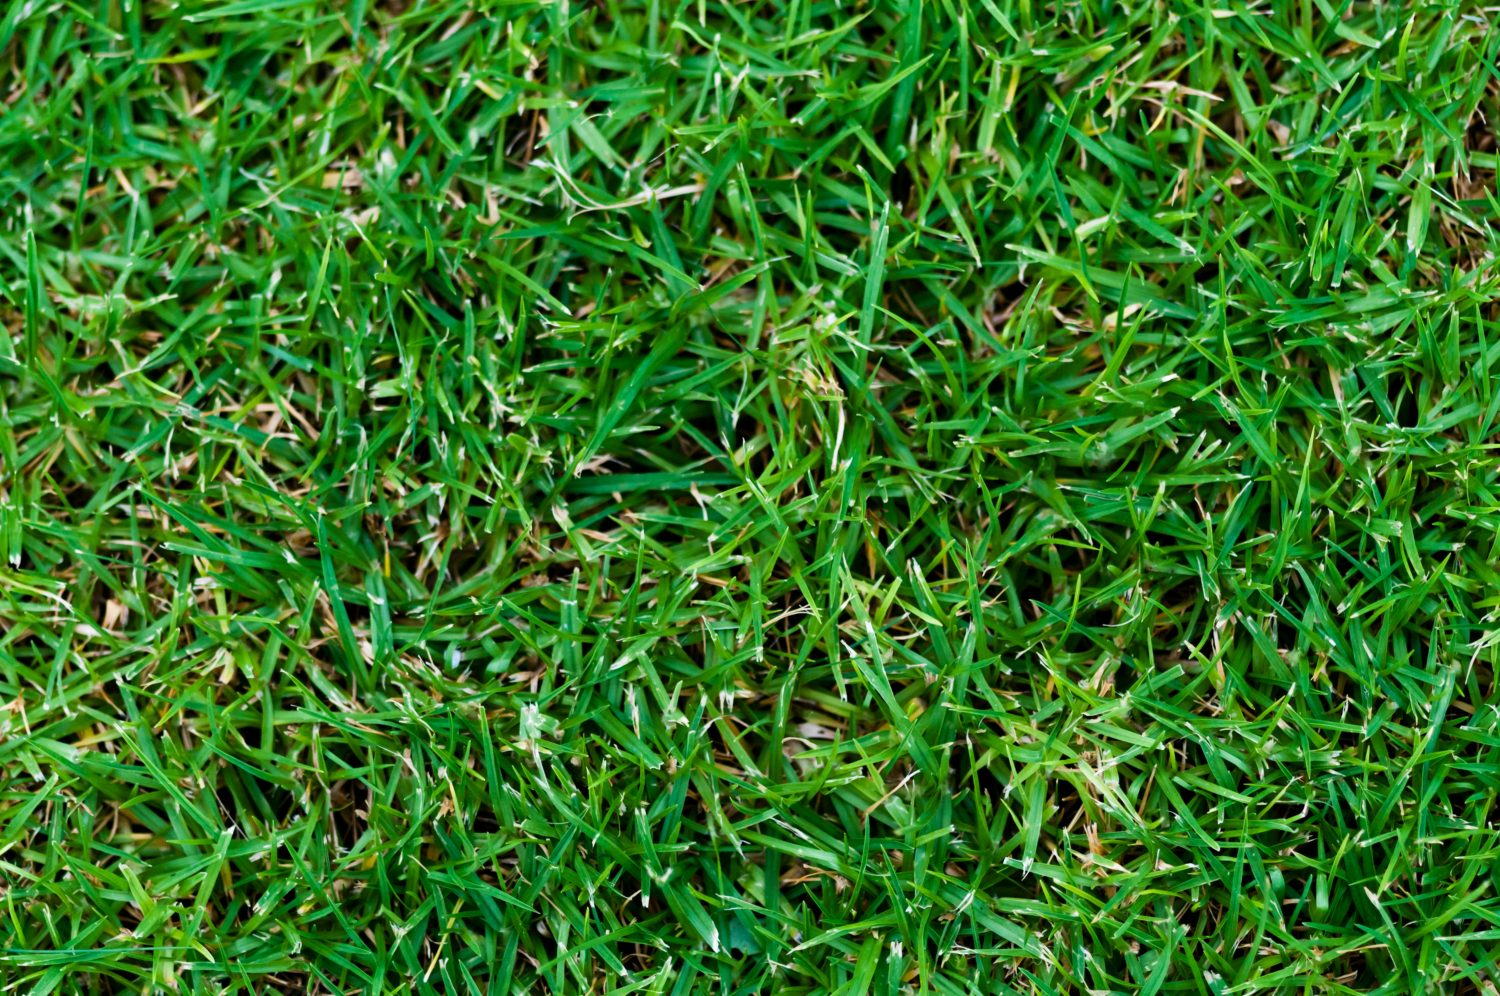 Green Grass Strong Leaves Texture